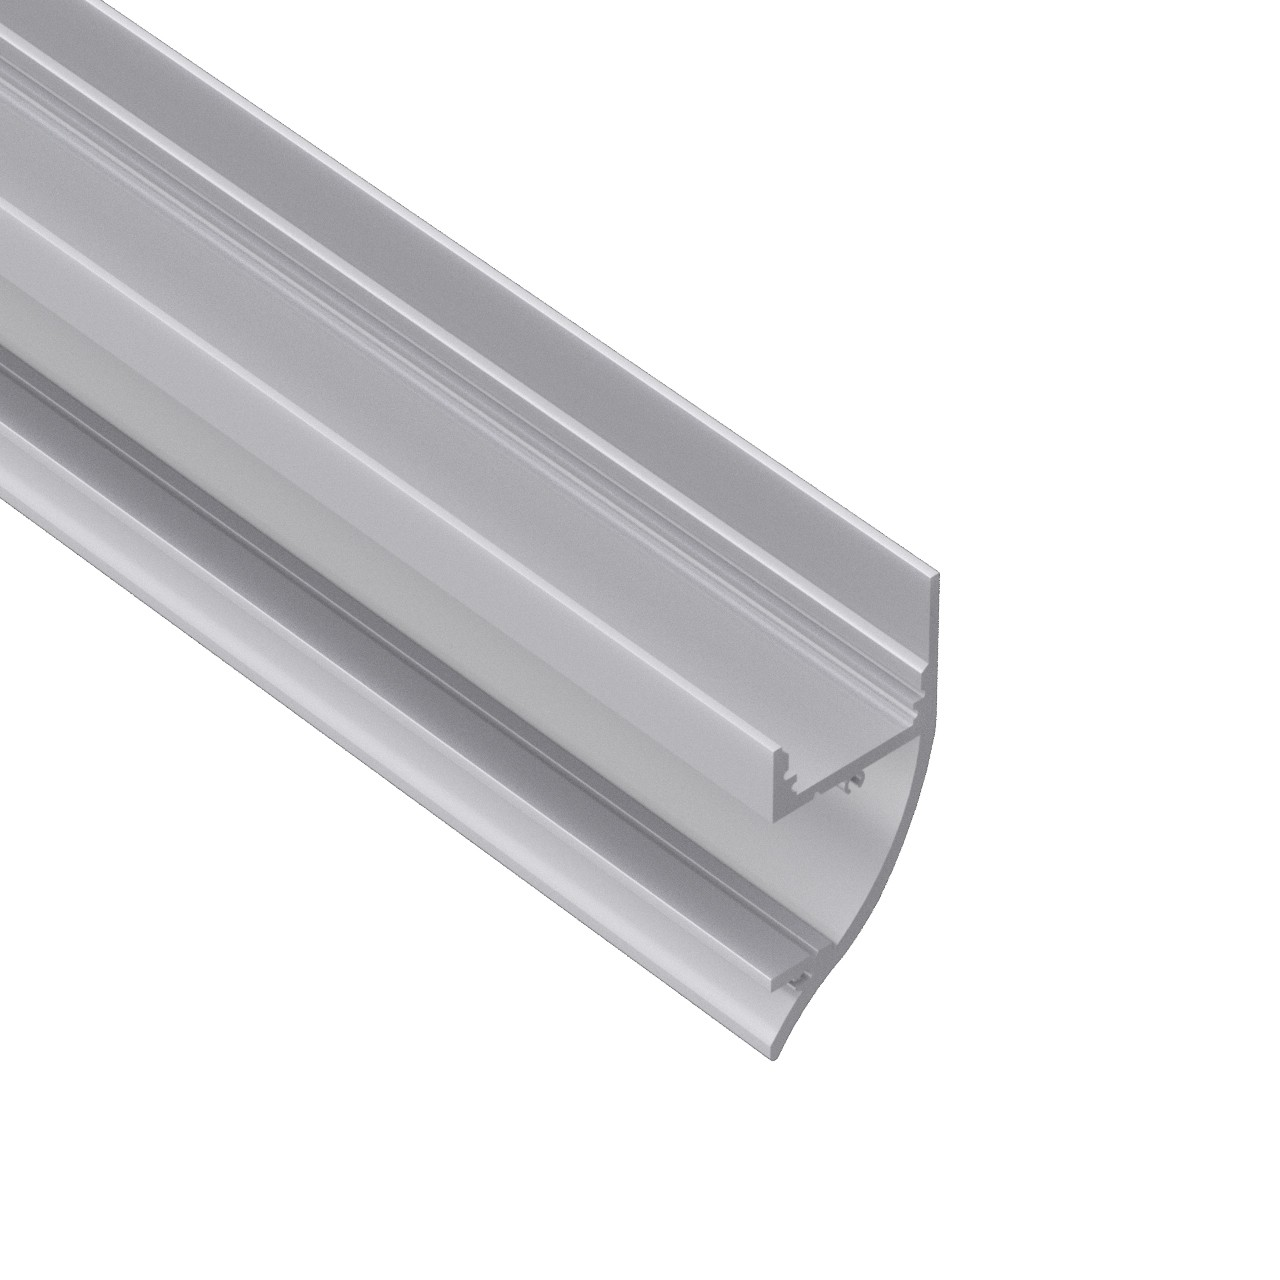 17.5x40mm AW8 Overflade vægbeslag Aluminium LED Kanal